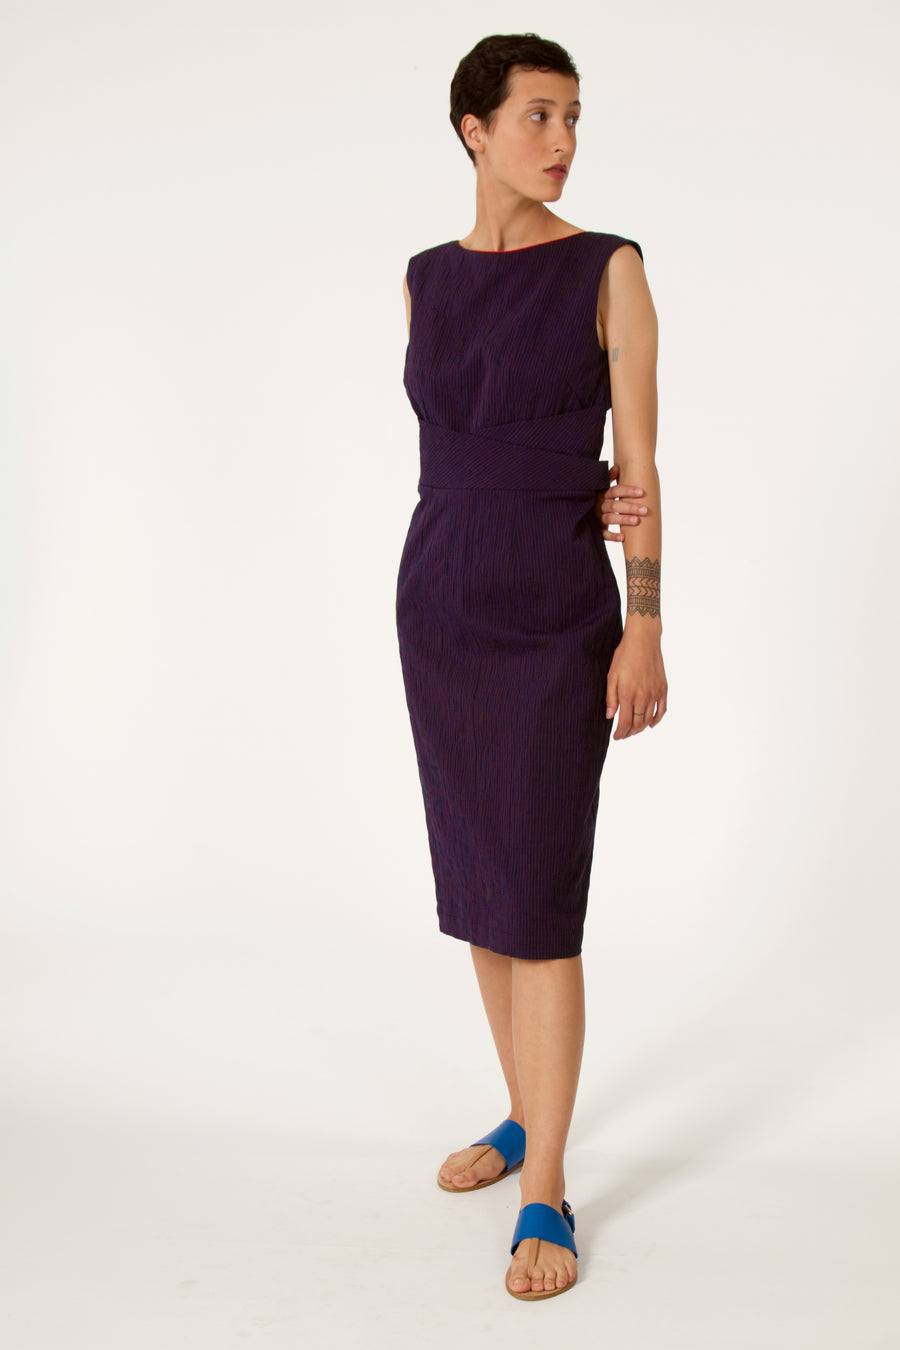 TAMISE Navy Dress